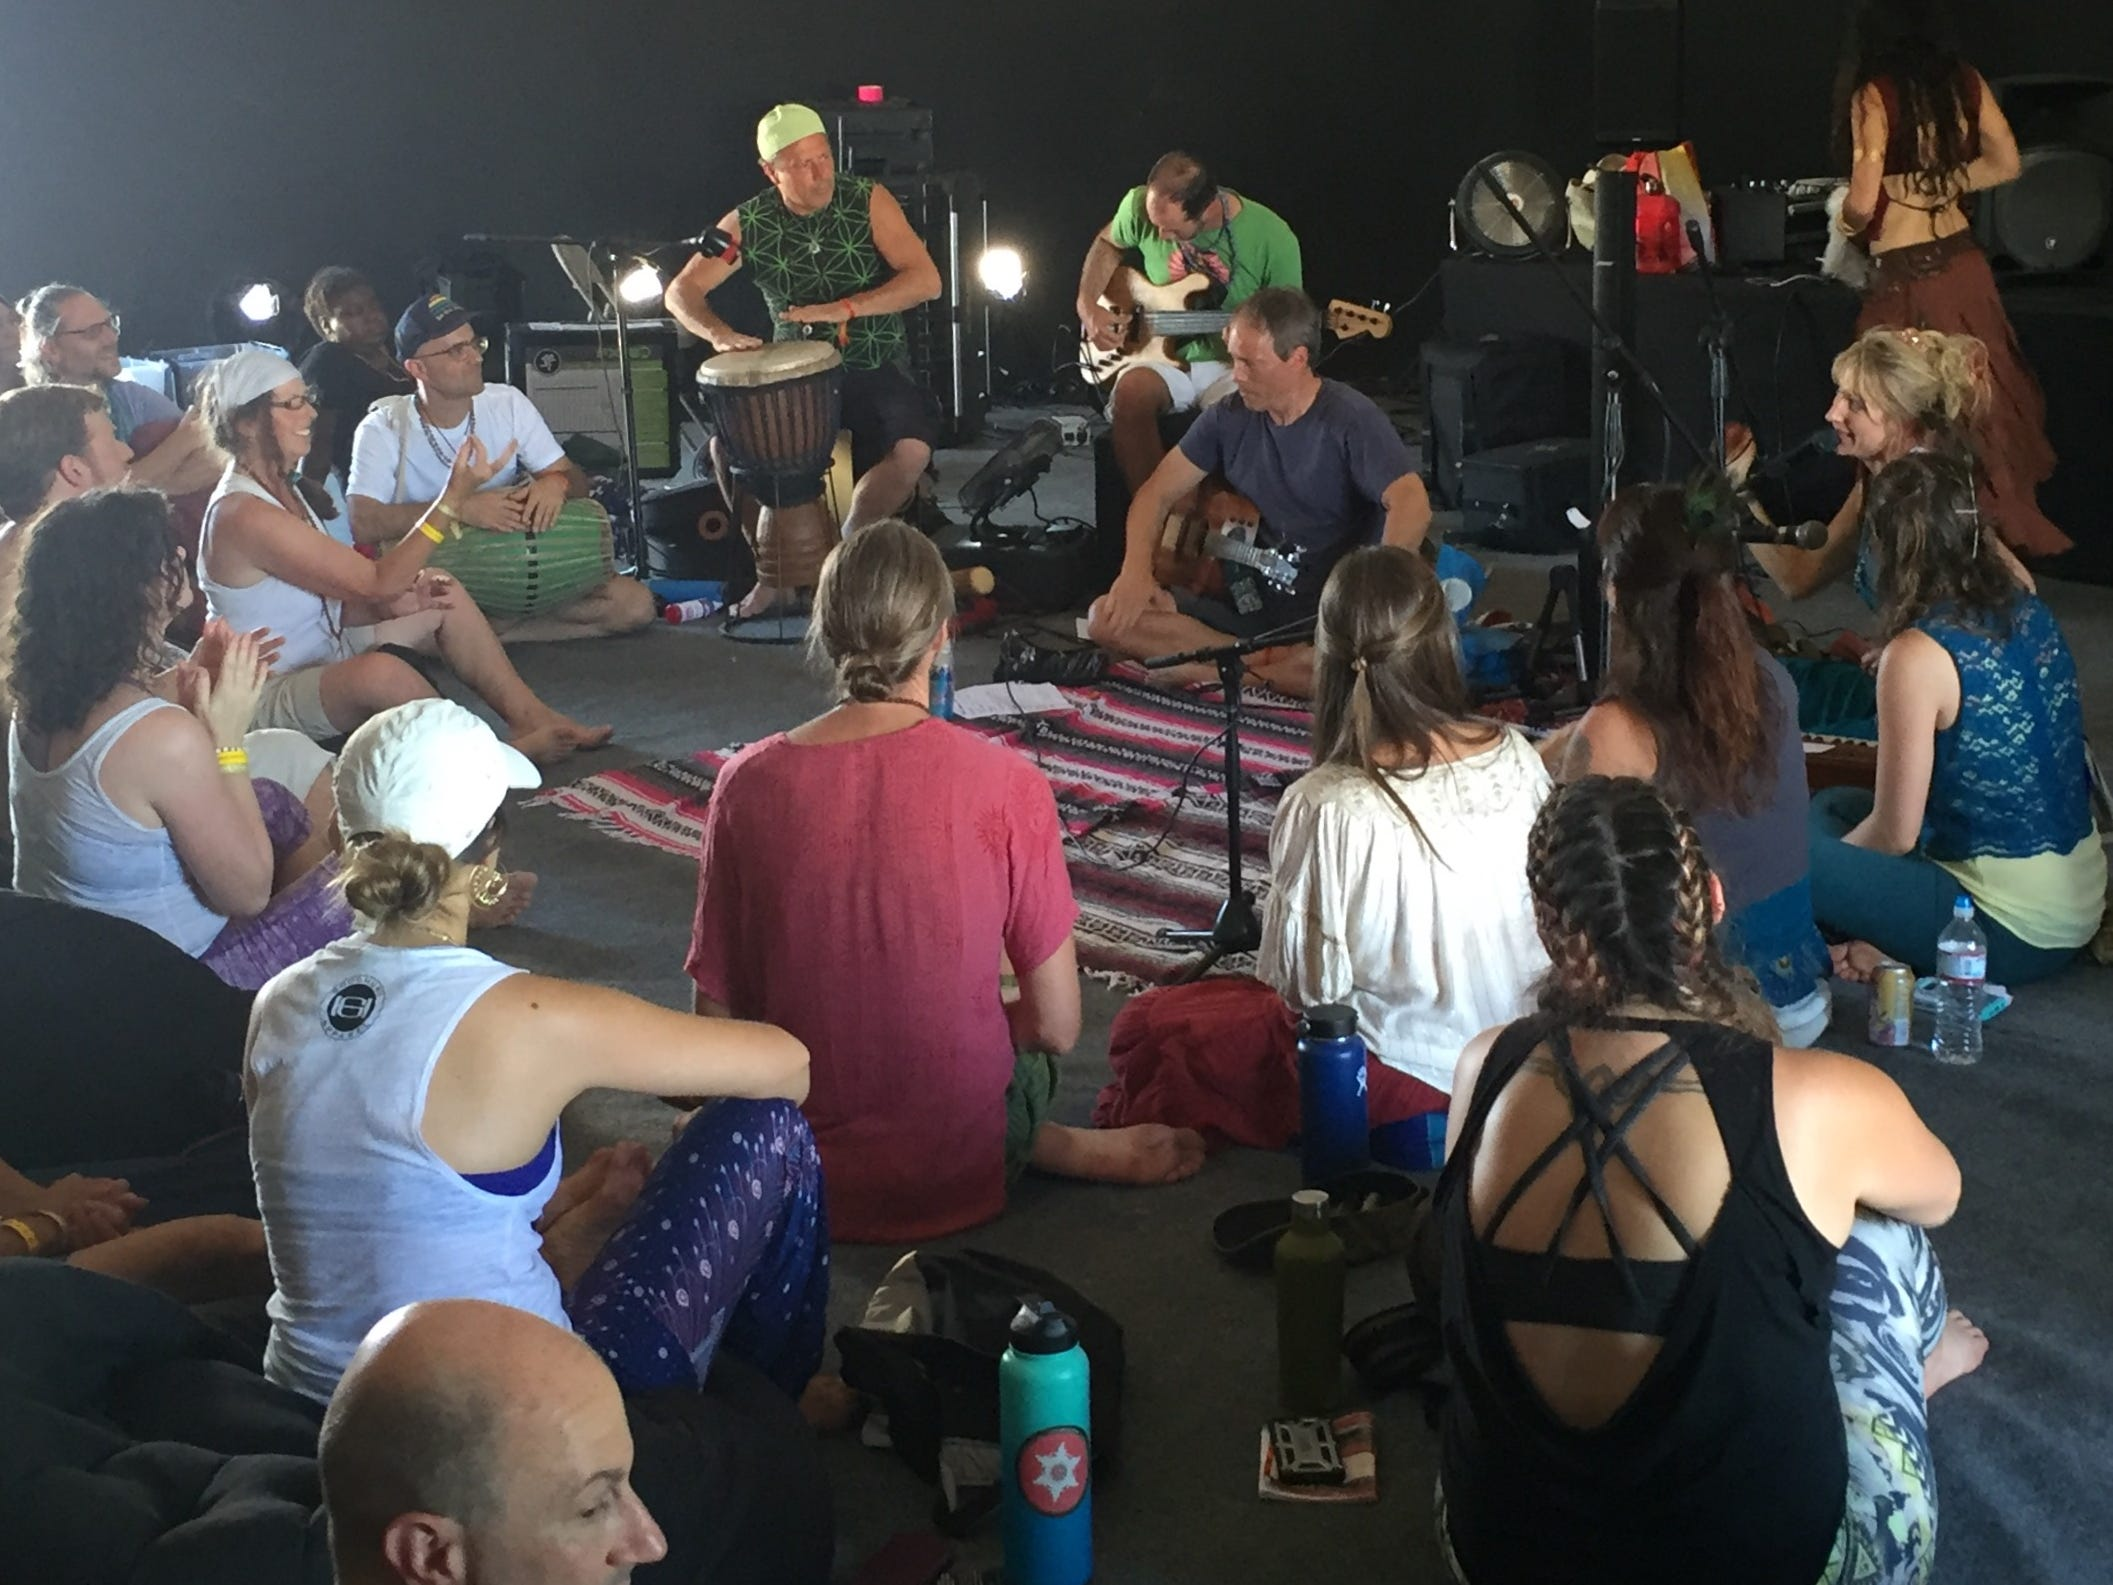 Thousands of people are expected to attend this weekend's Bhakti Fest,  a celebration of  East Indian sacred music, yoga and integrative health. Held in Joshua Tree, the event wraps up Sunday.